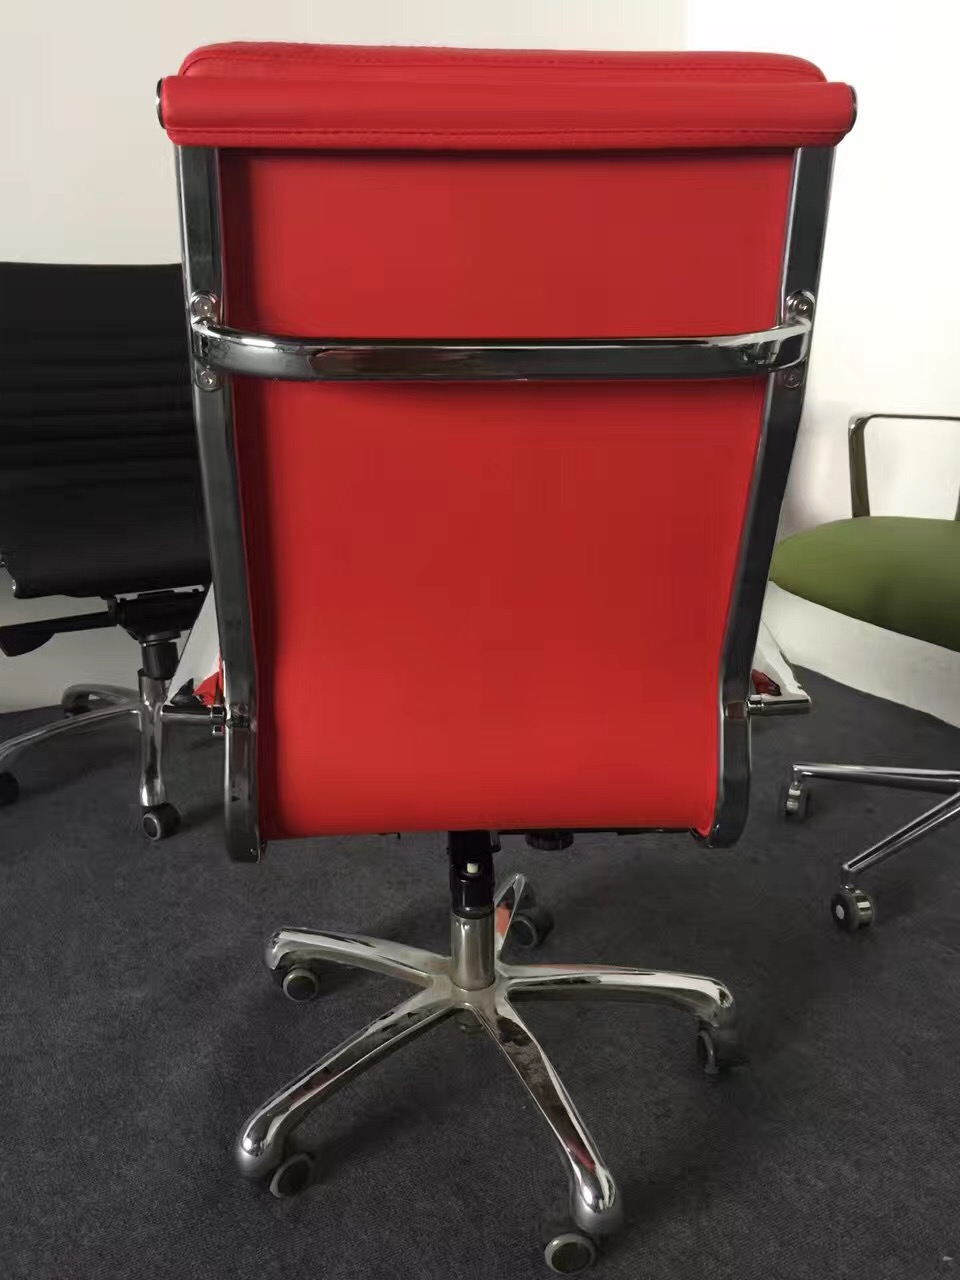 Modern red eames office chair/reclining red office chair/ergonomic red eames mesh chair